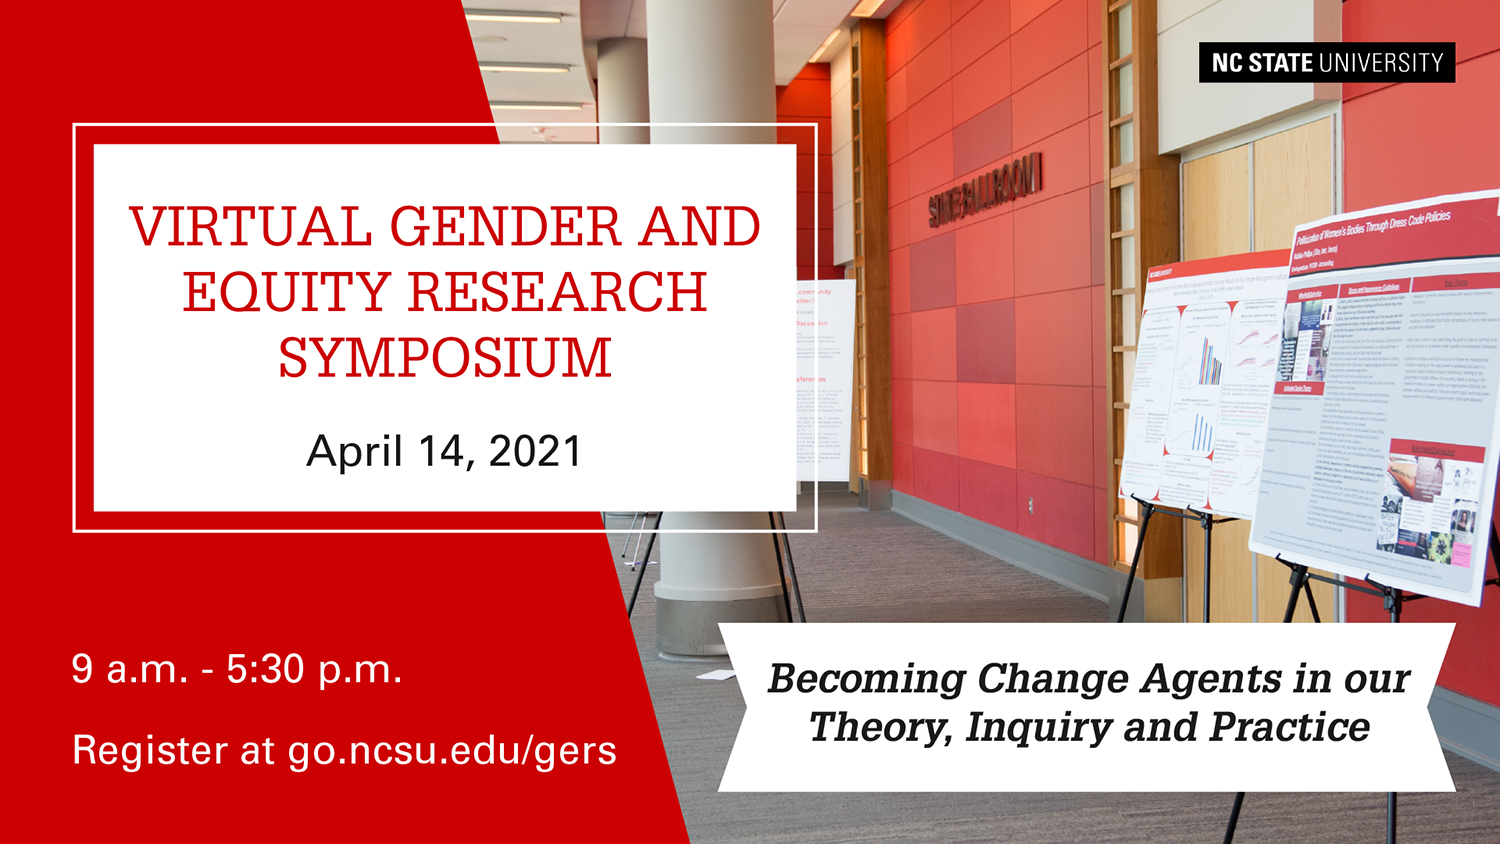 Gender and Equity Research Symposium, April 14, 2021